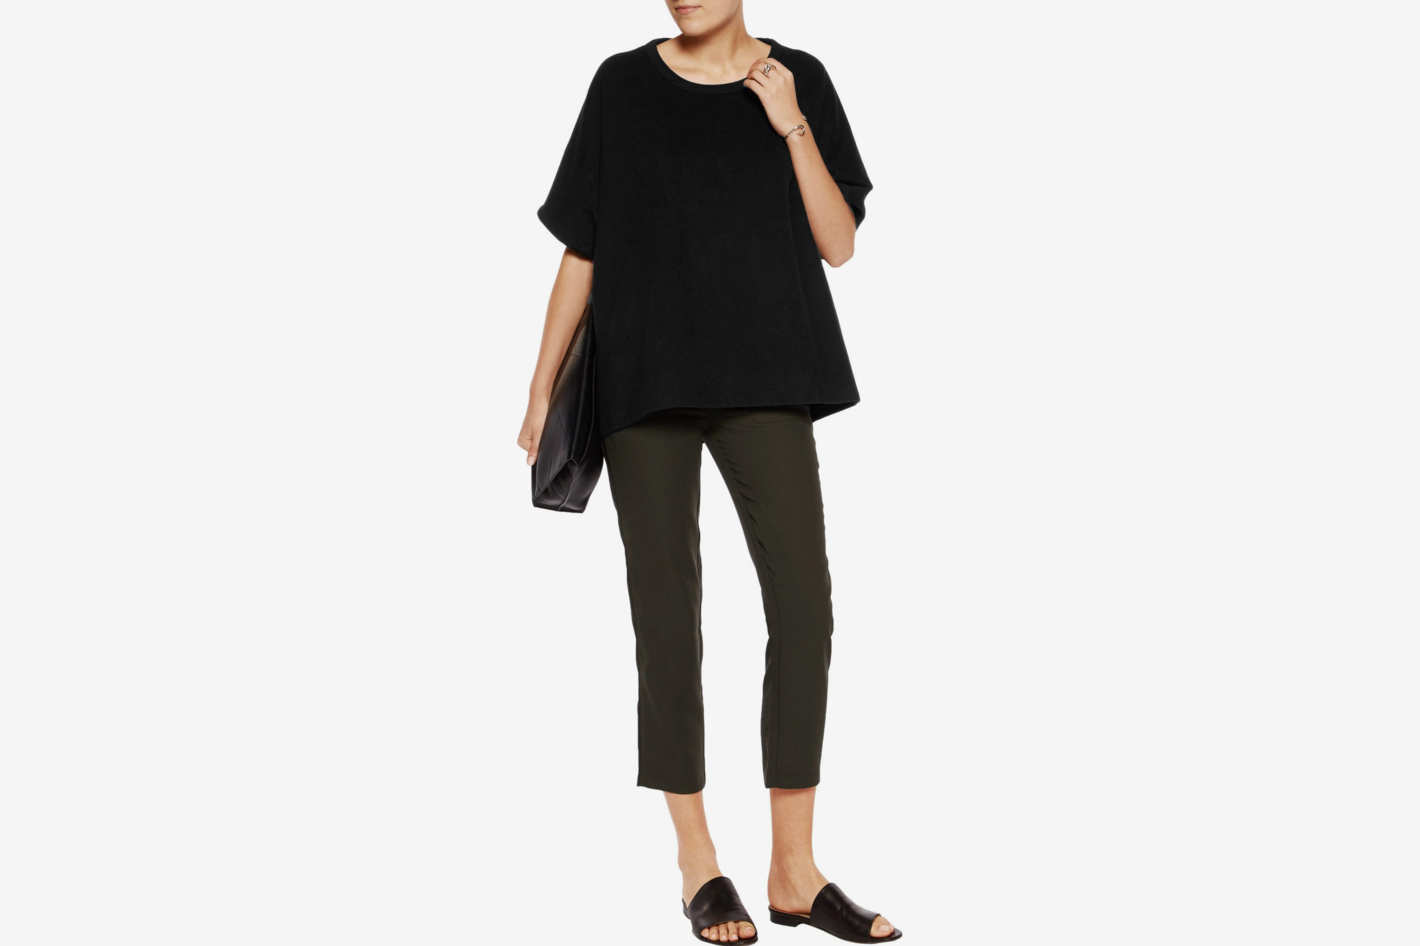 James Perse Oversized Felt Top